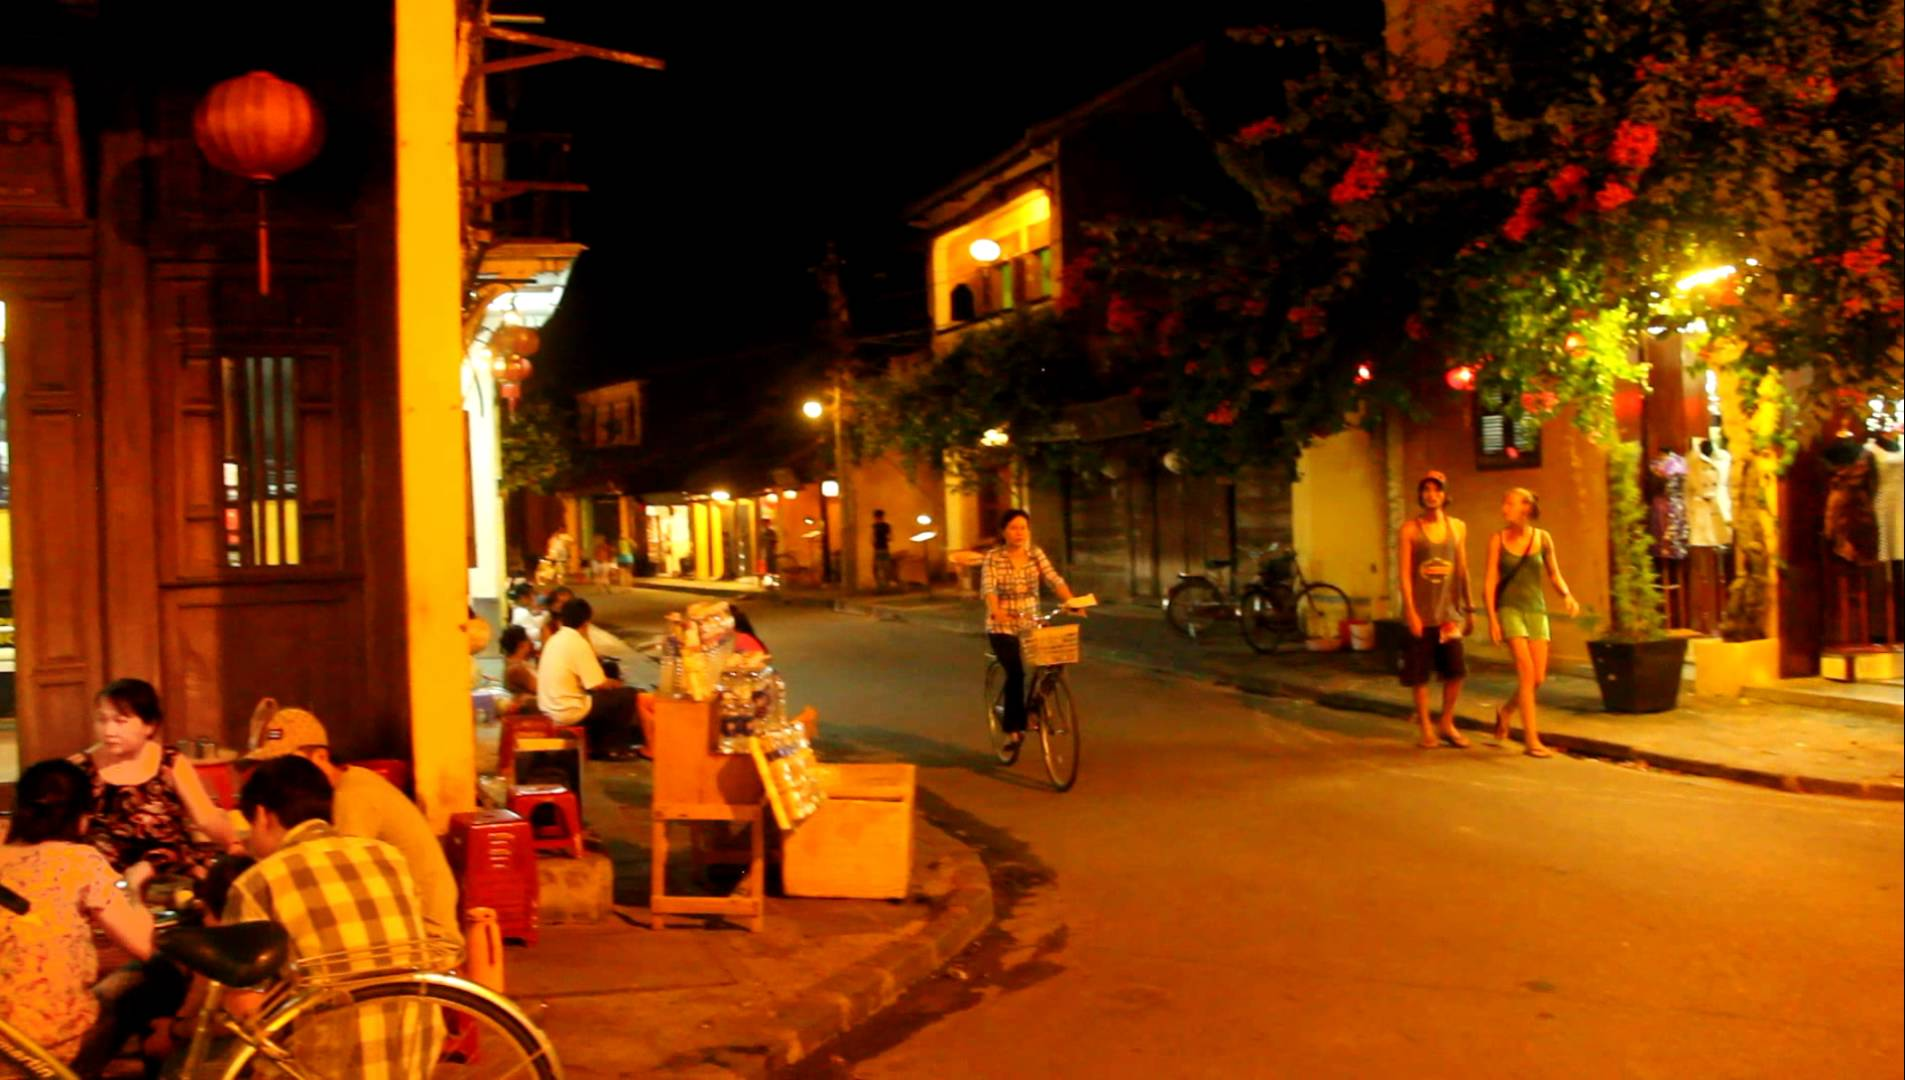 Hoi An is safe at night